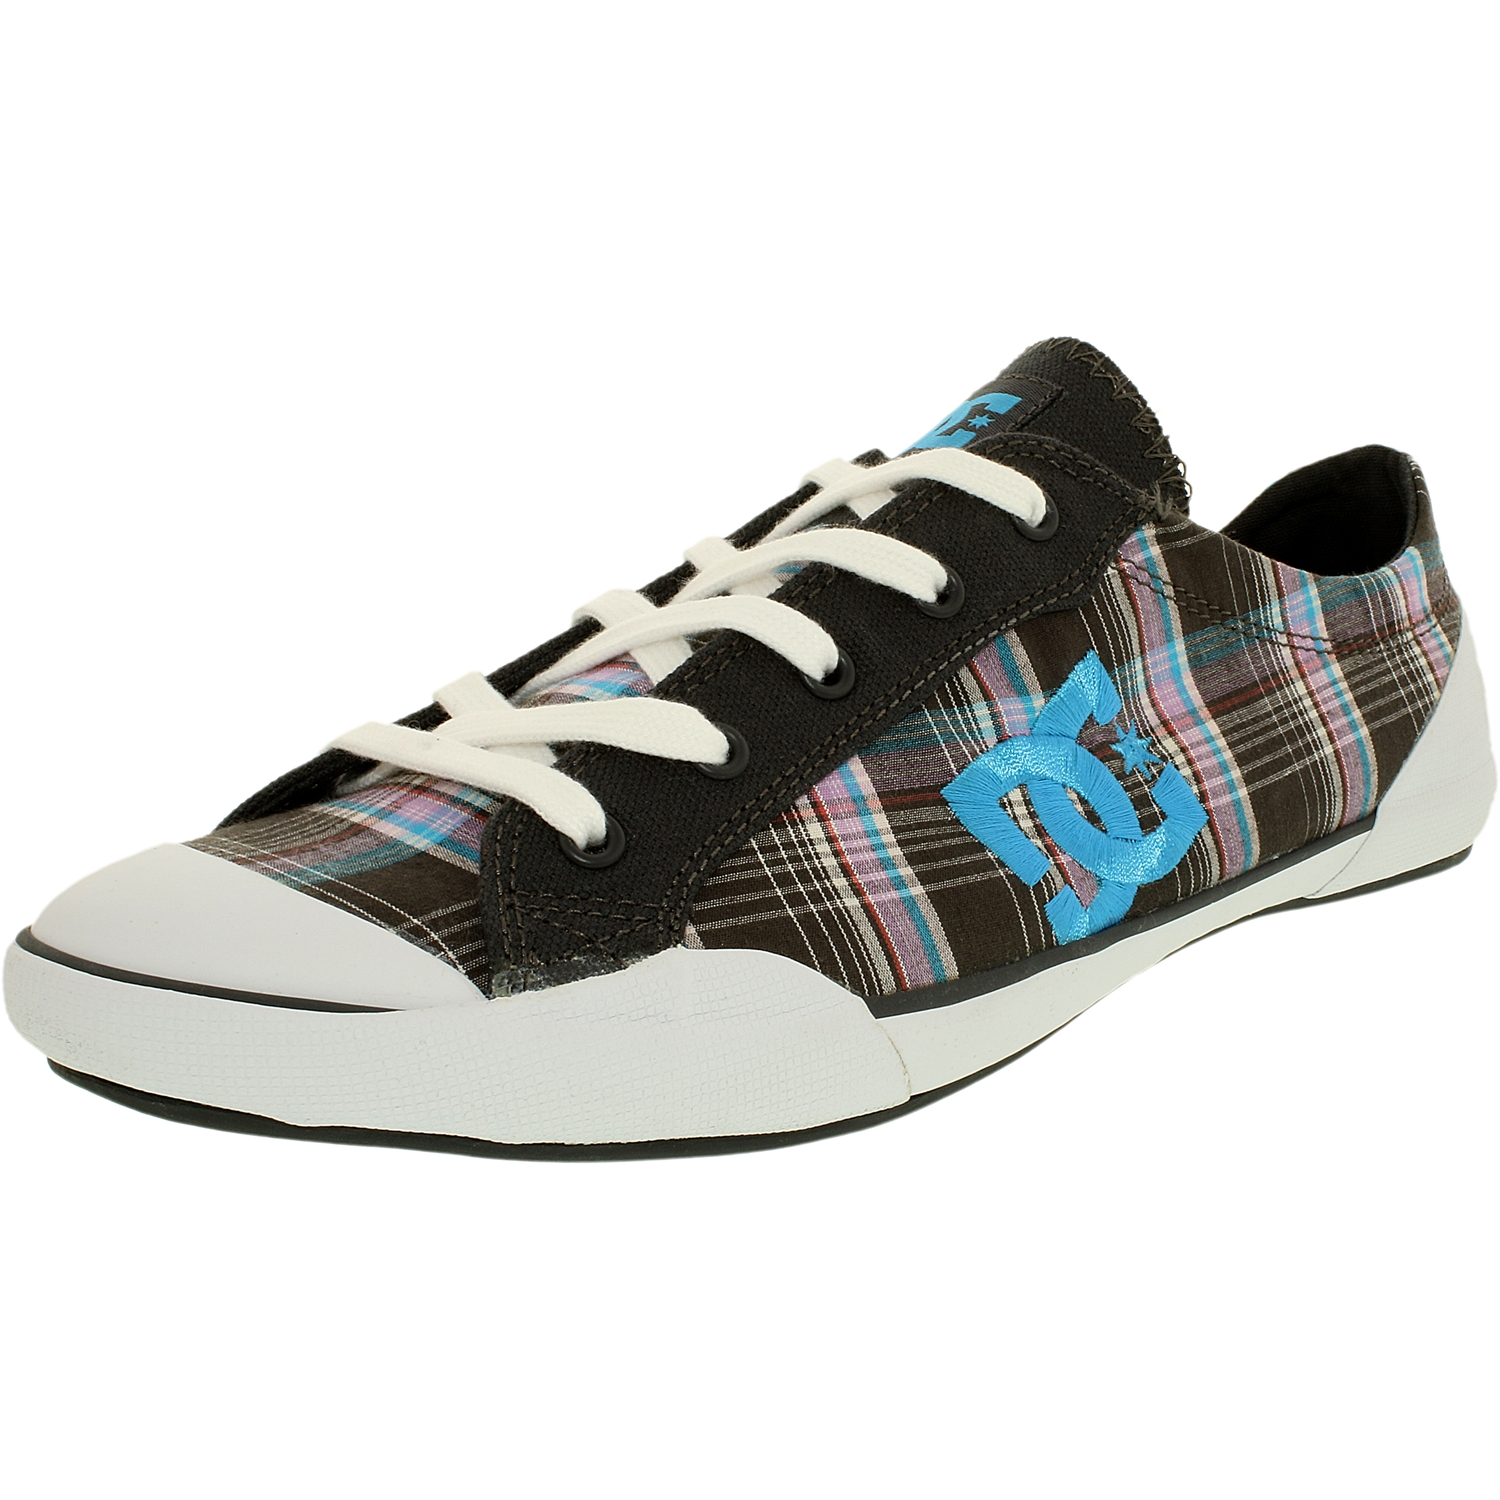 Dc Women's Chelsea Z Lse Dark Shadow/White/Turquoise Ankle-High Fabric Fashion Sneaker - 11M